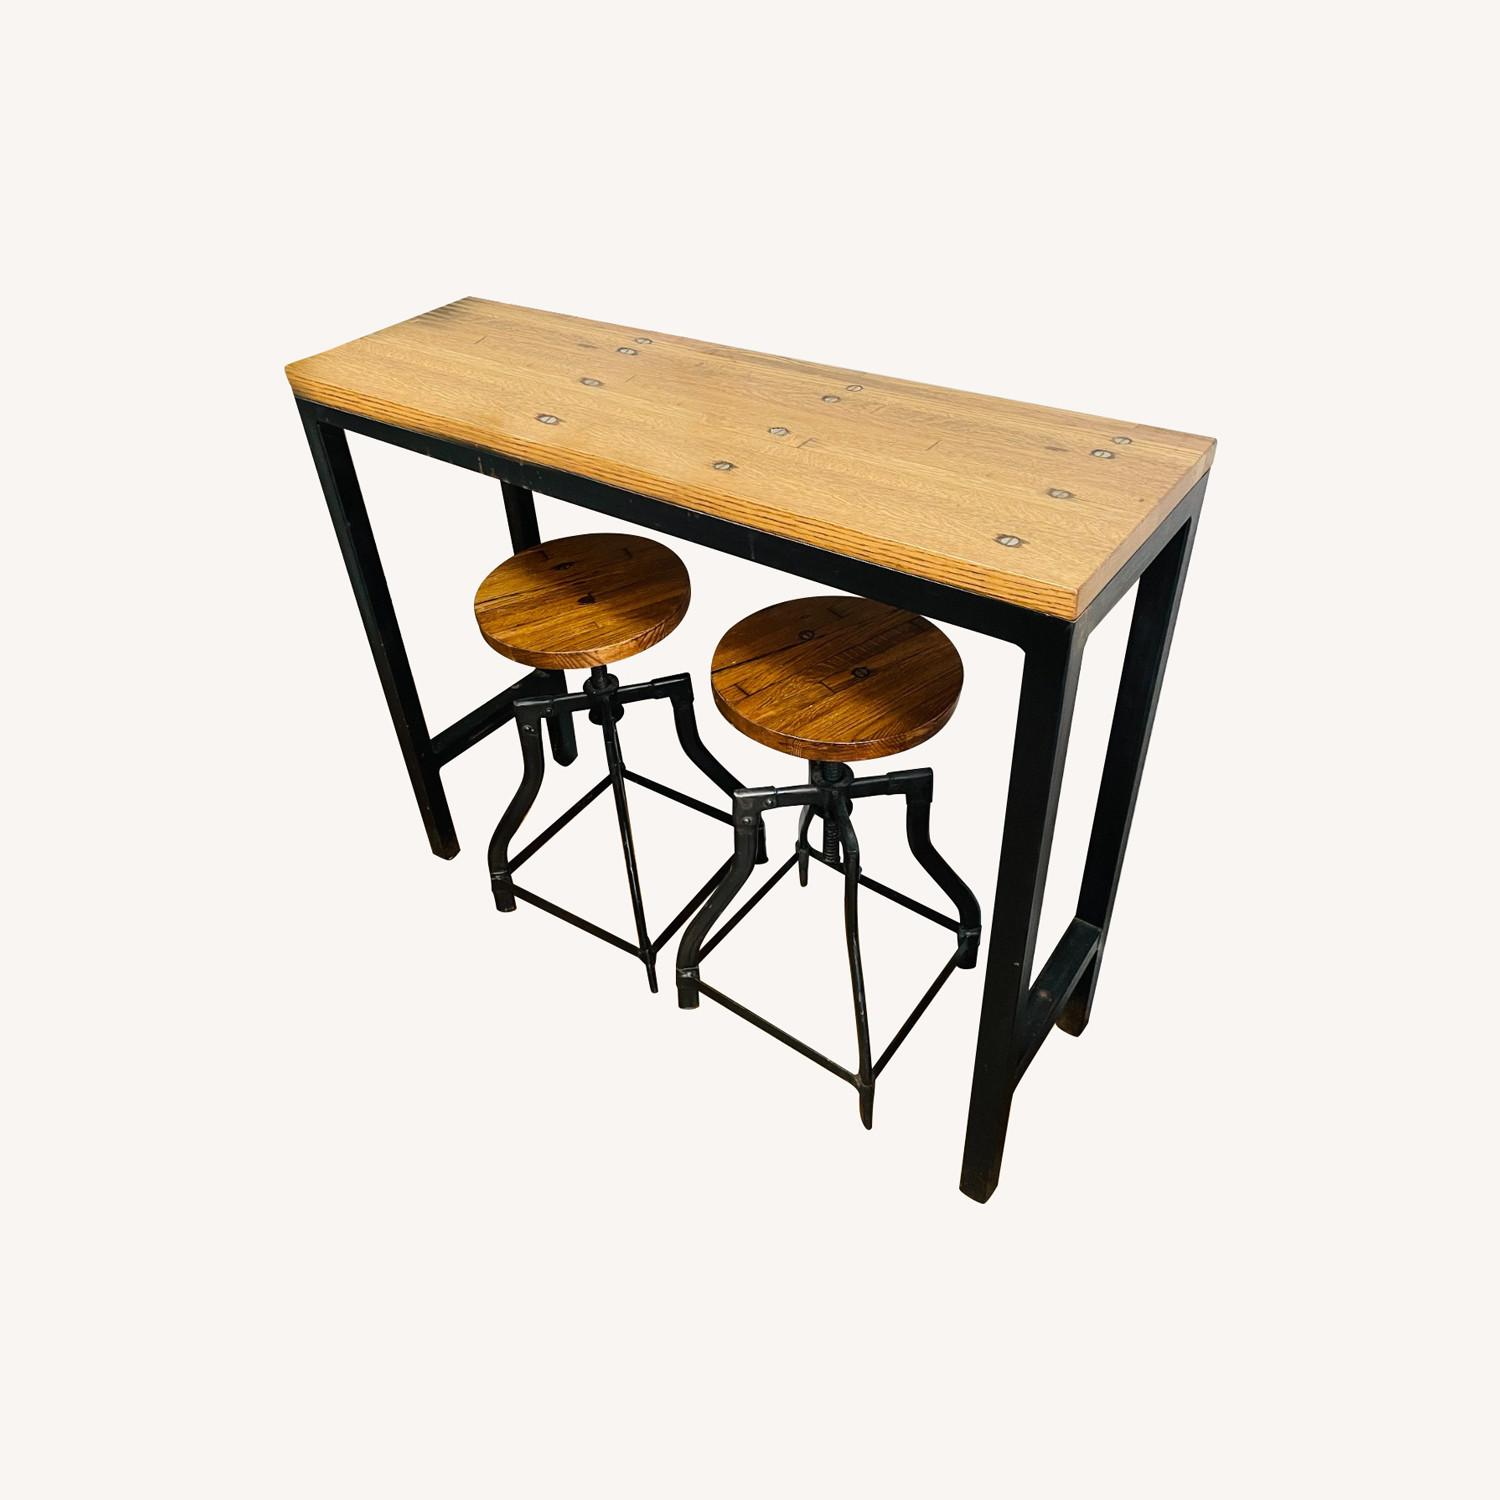 Console Table with Matching Stools - image-0